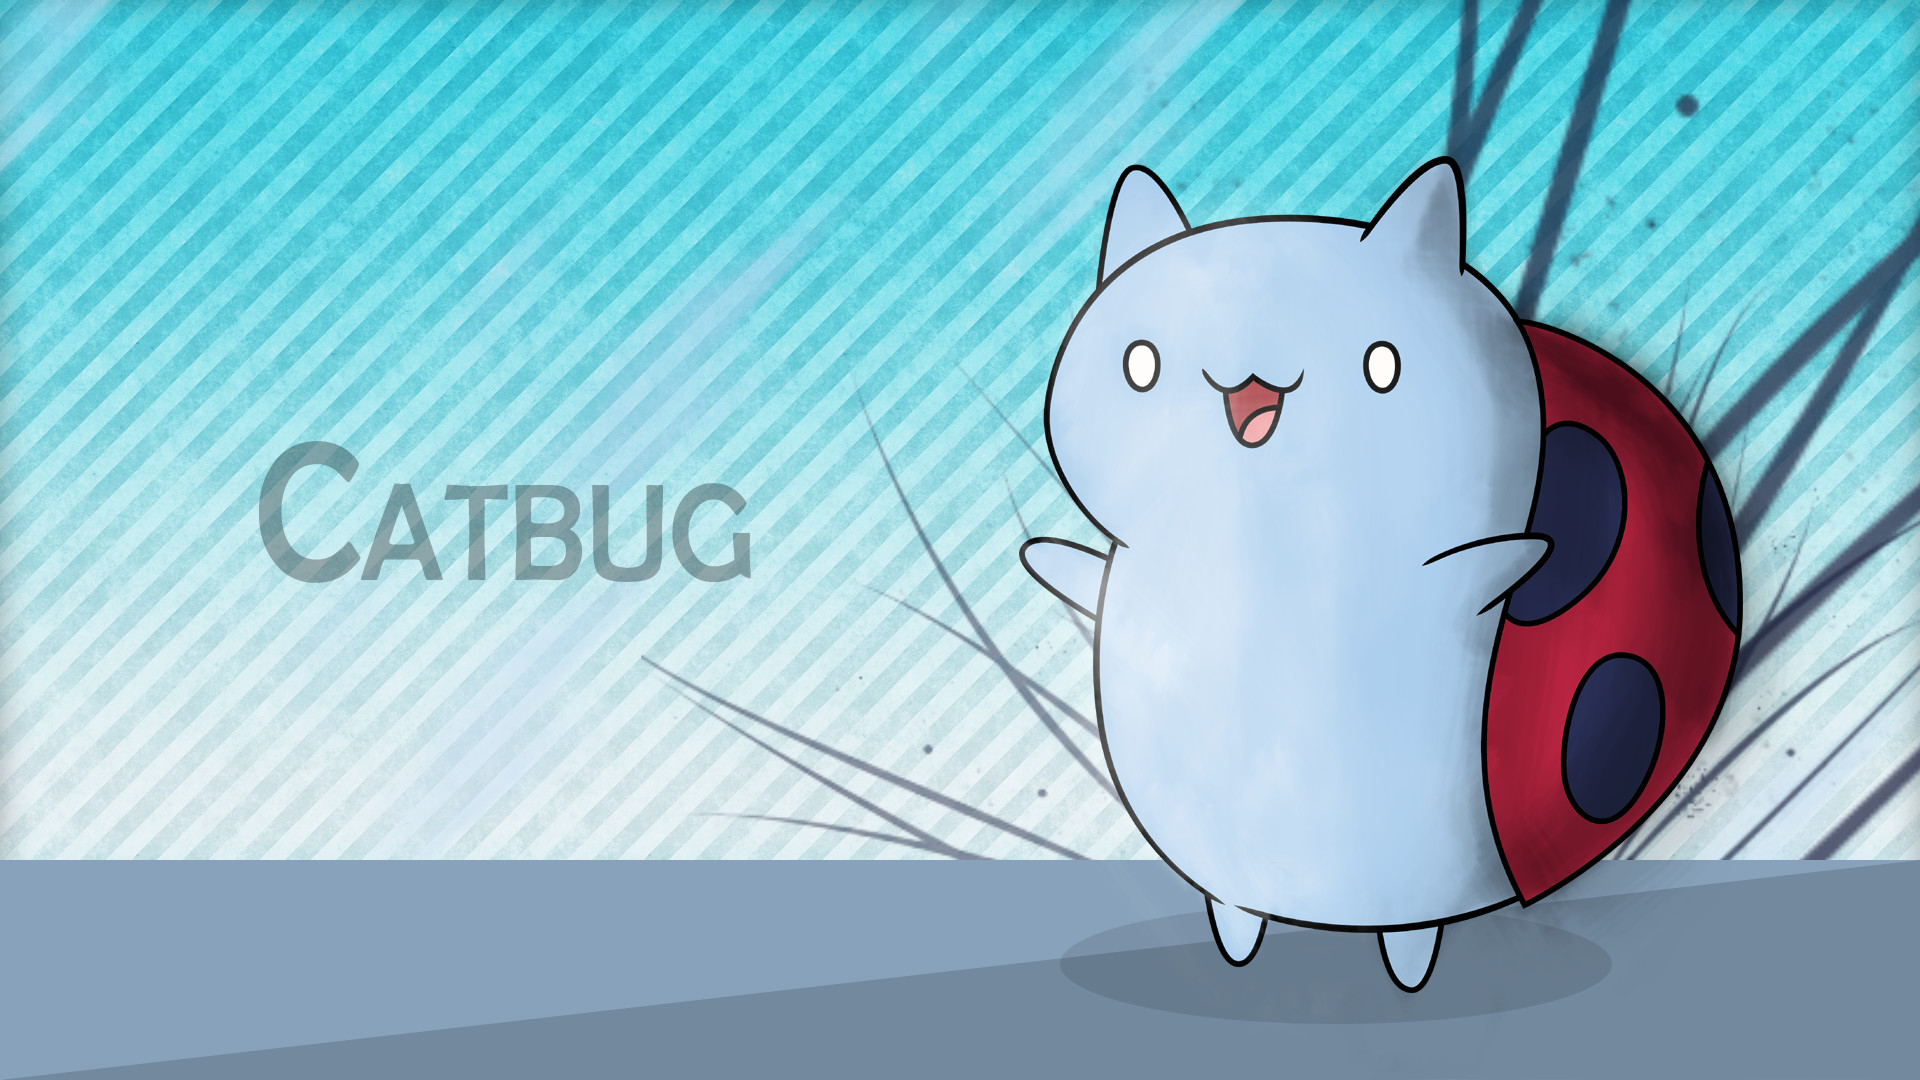 Res: 1920x1080, HD Catbug 4k Wallpapers for Mobile